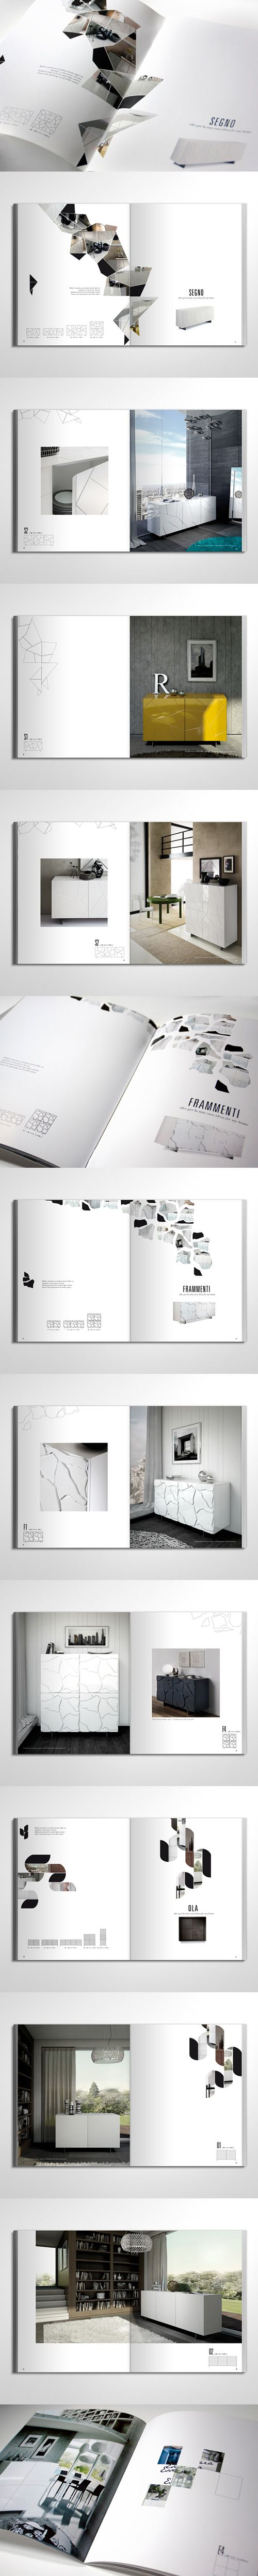 Furniture catalogue Riflessi  #behance